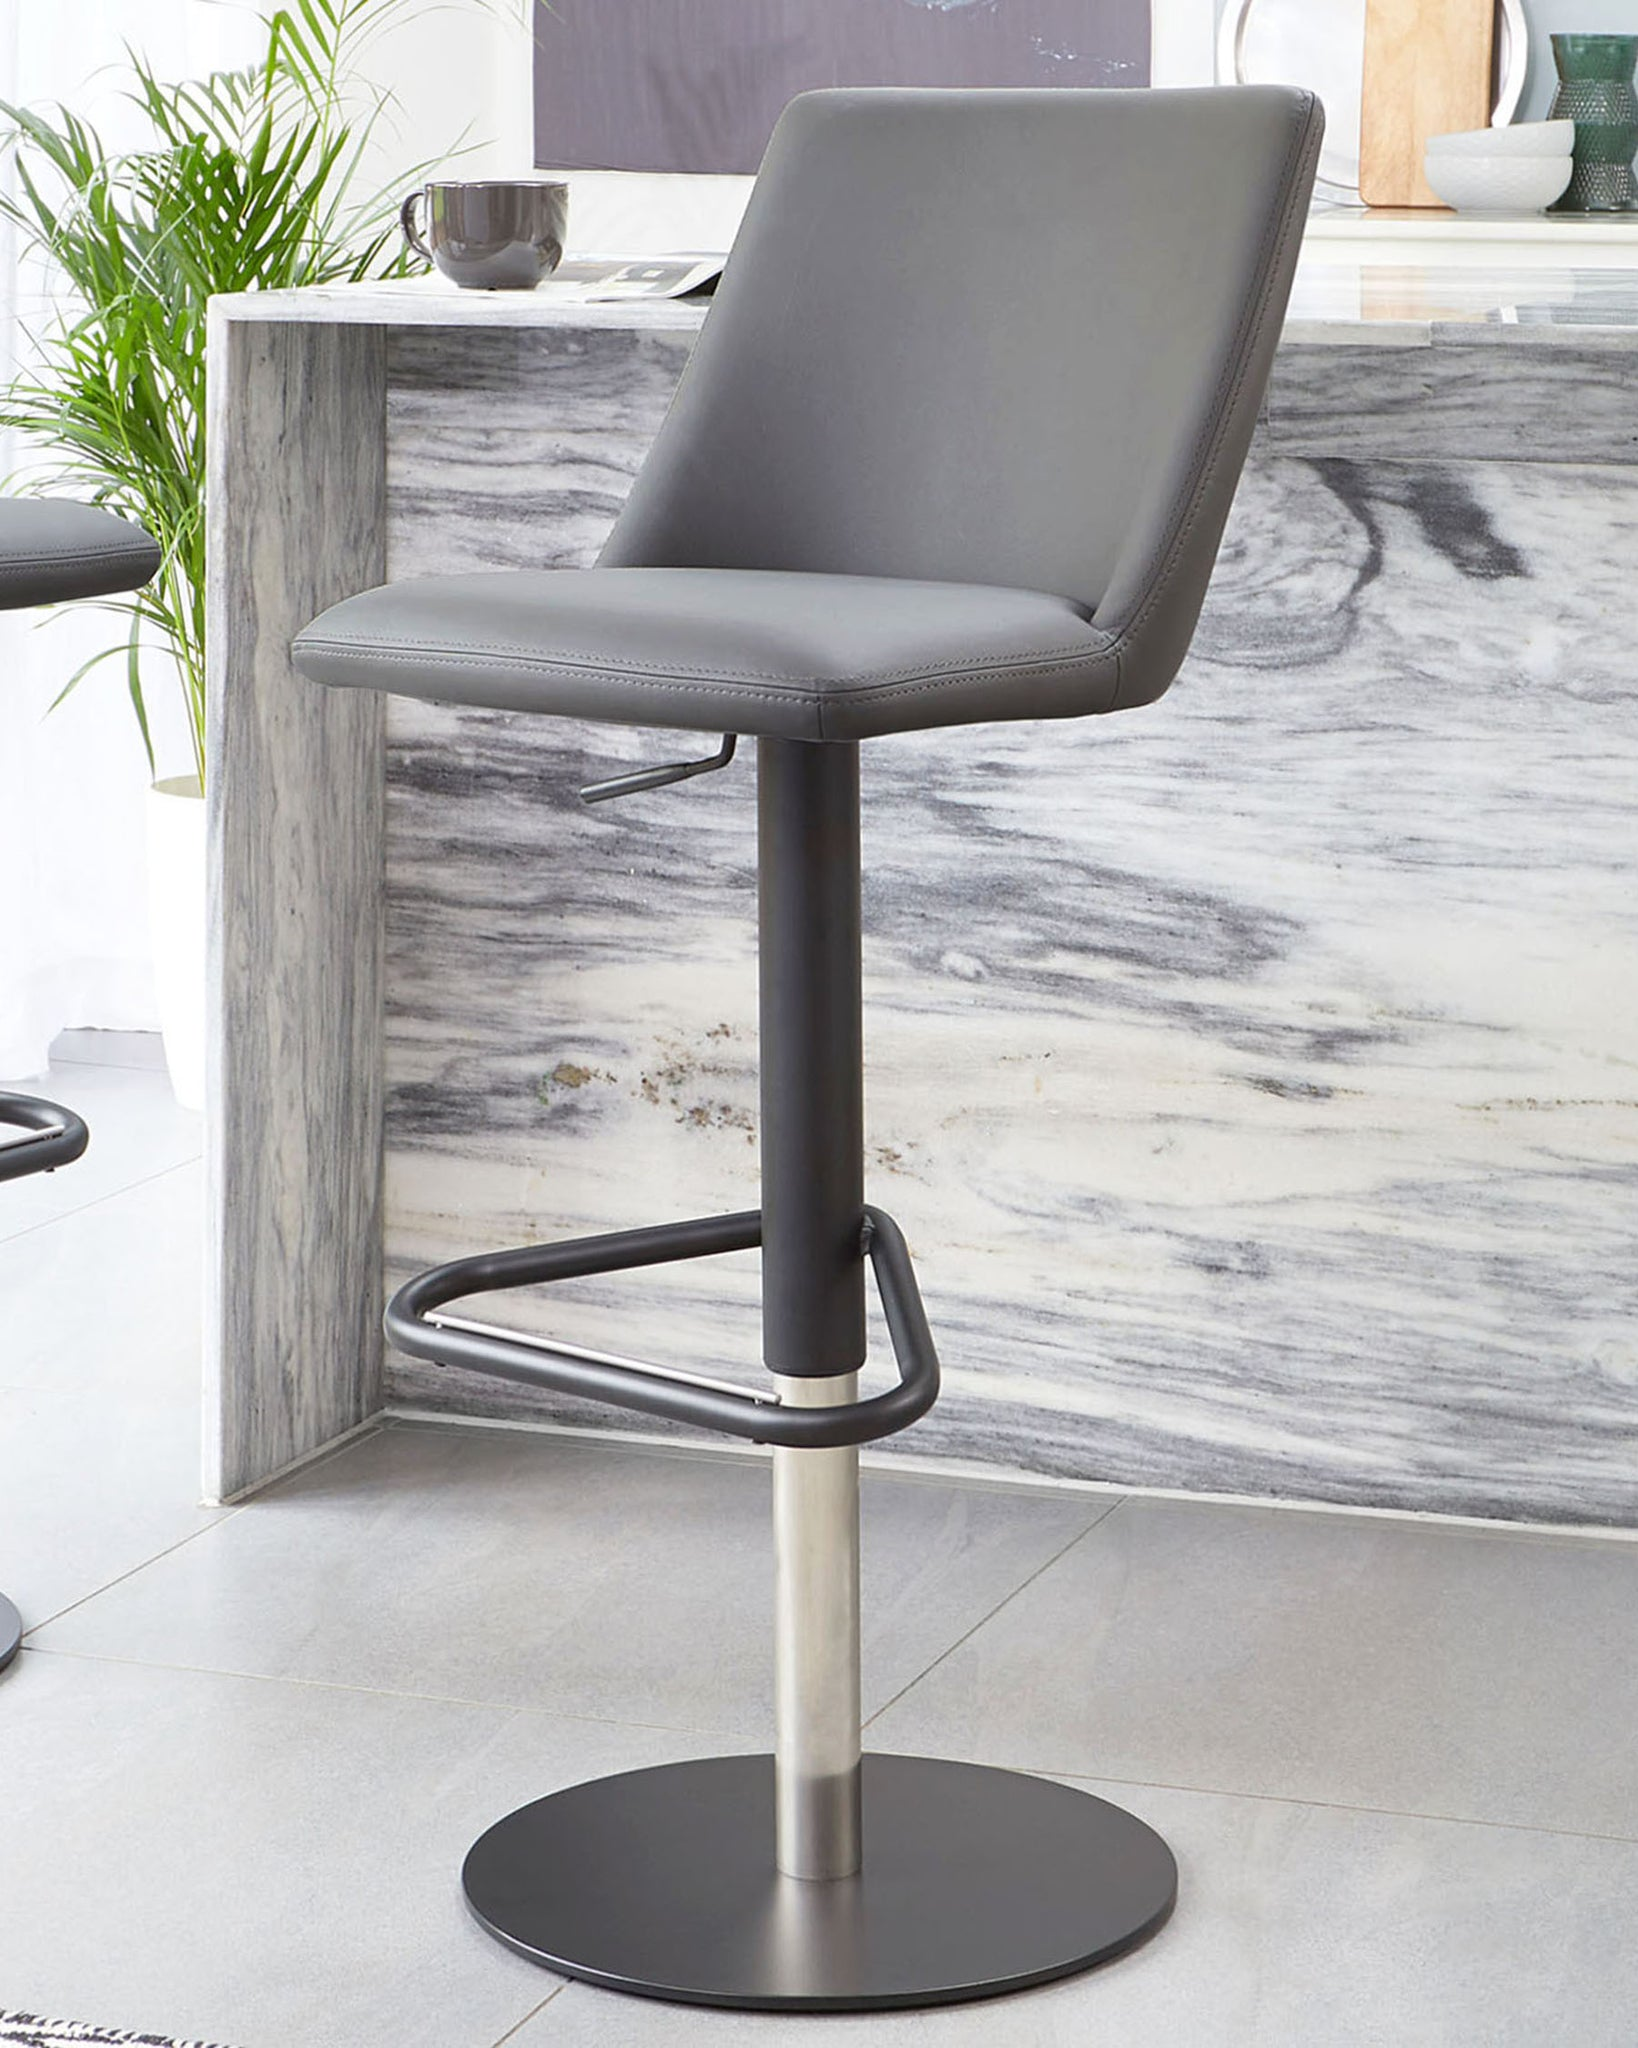 Dante Dark Grey And Matt Black Faux Leather Gas Lift Bar Stool